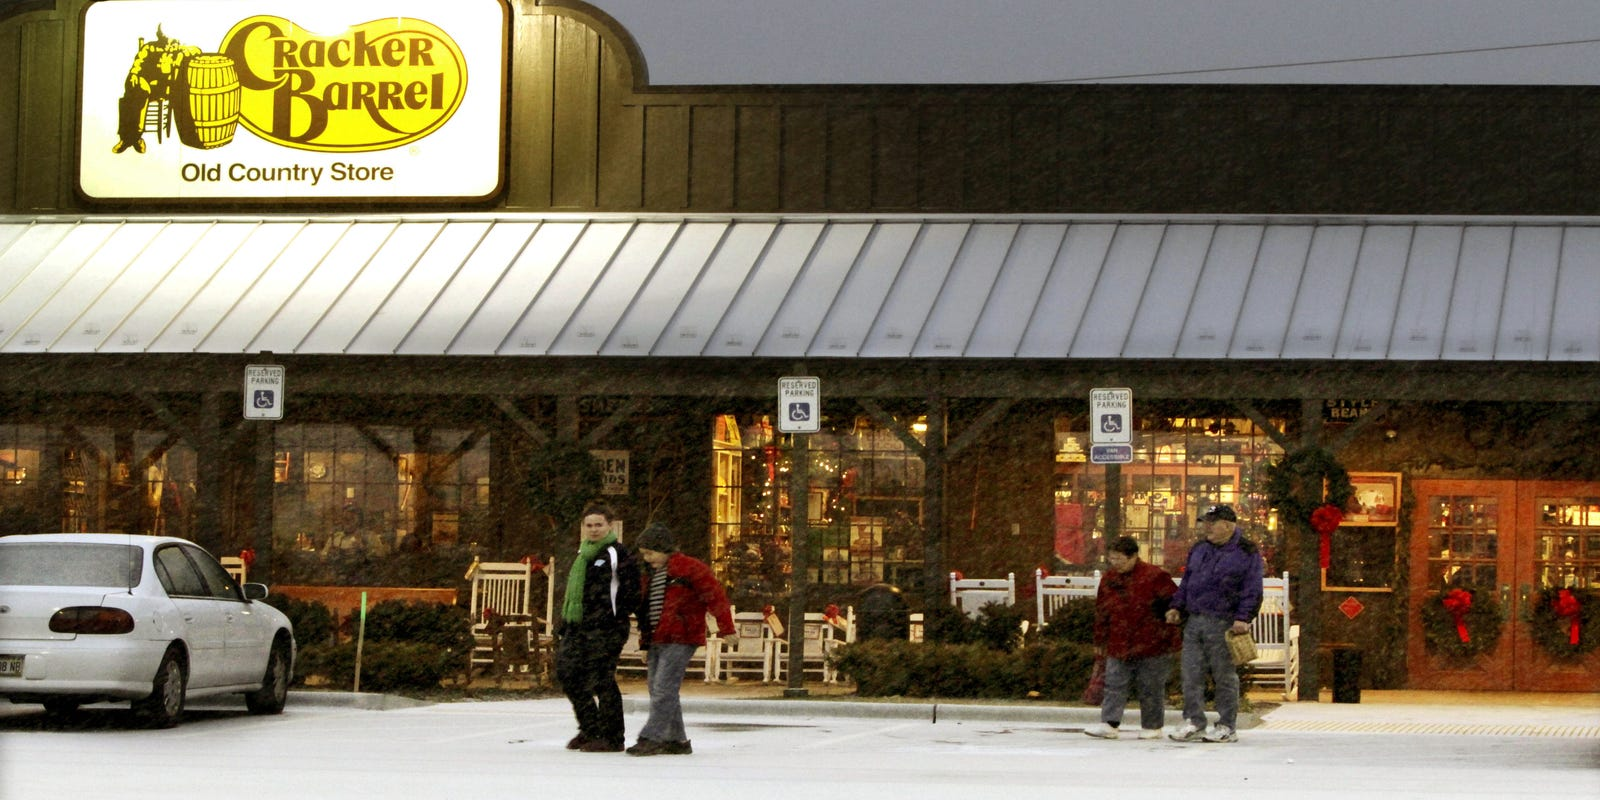 cracker barrel goes trendy to lure millennials - Cracker Barrel Store Christmas Decorations